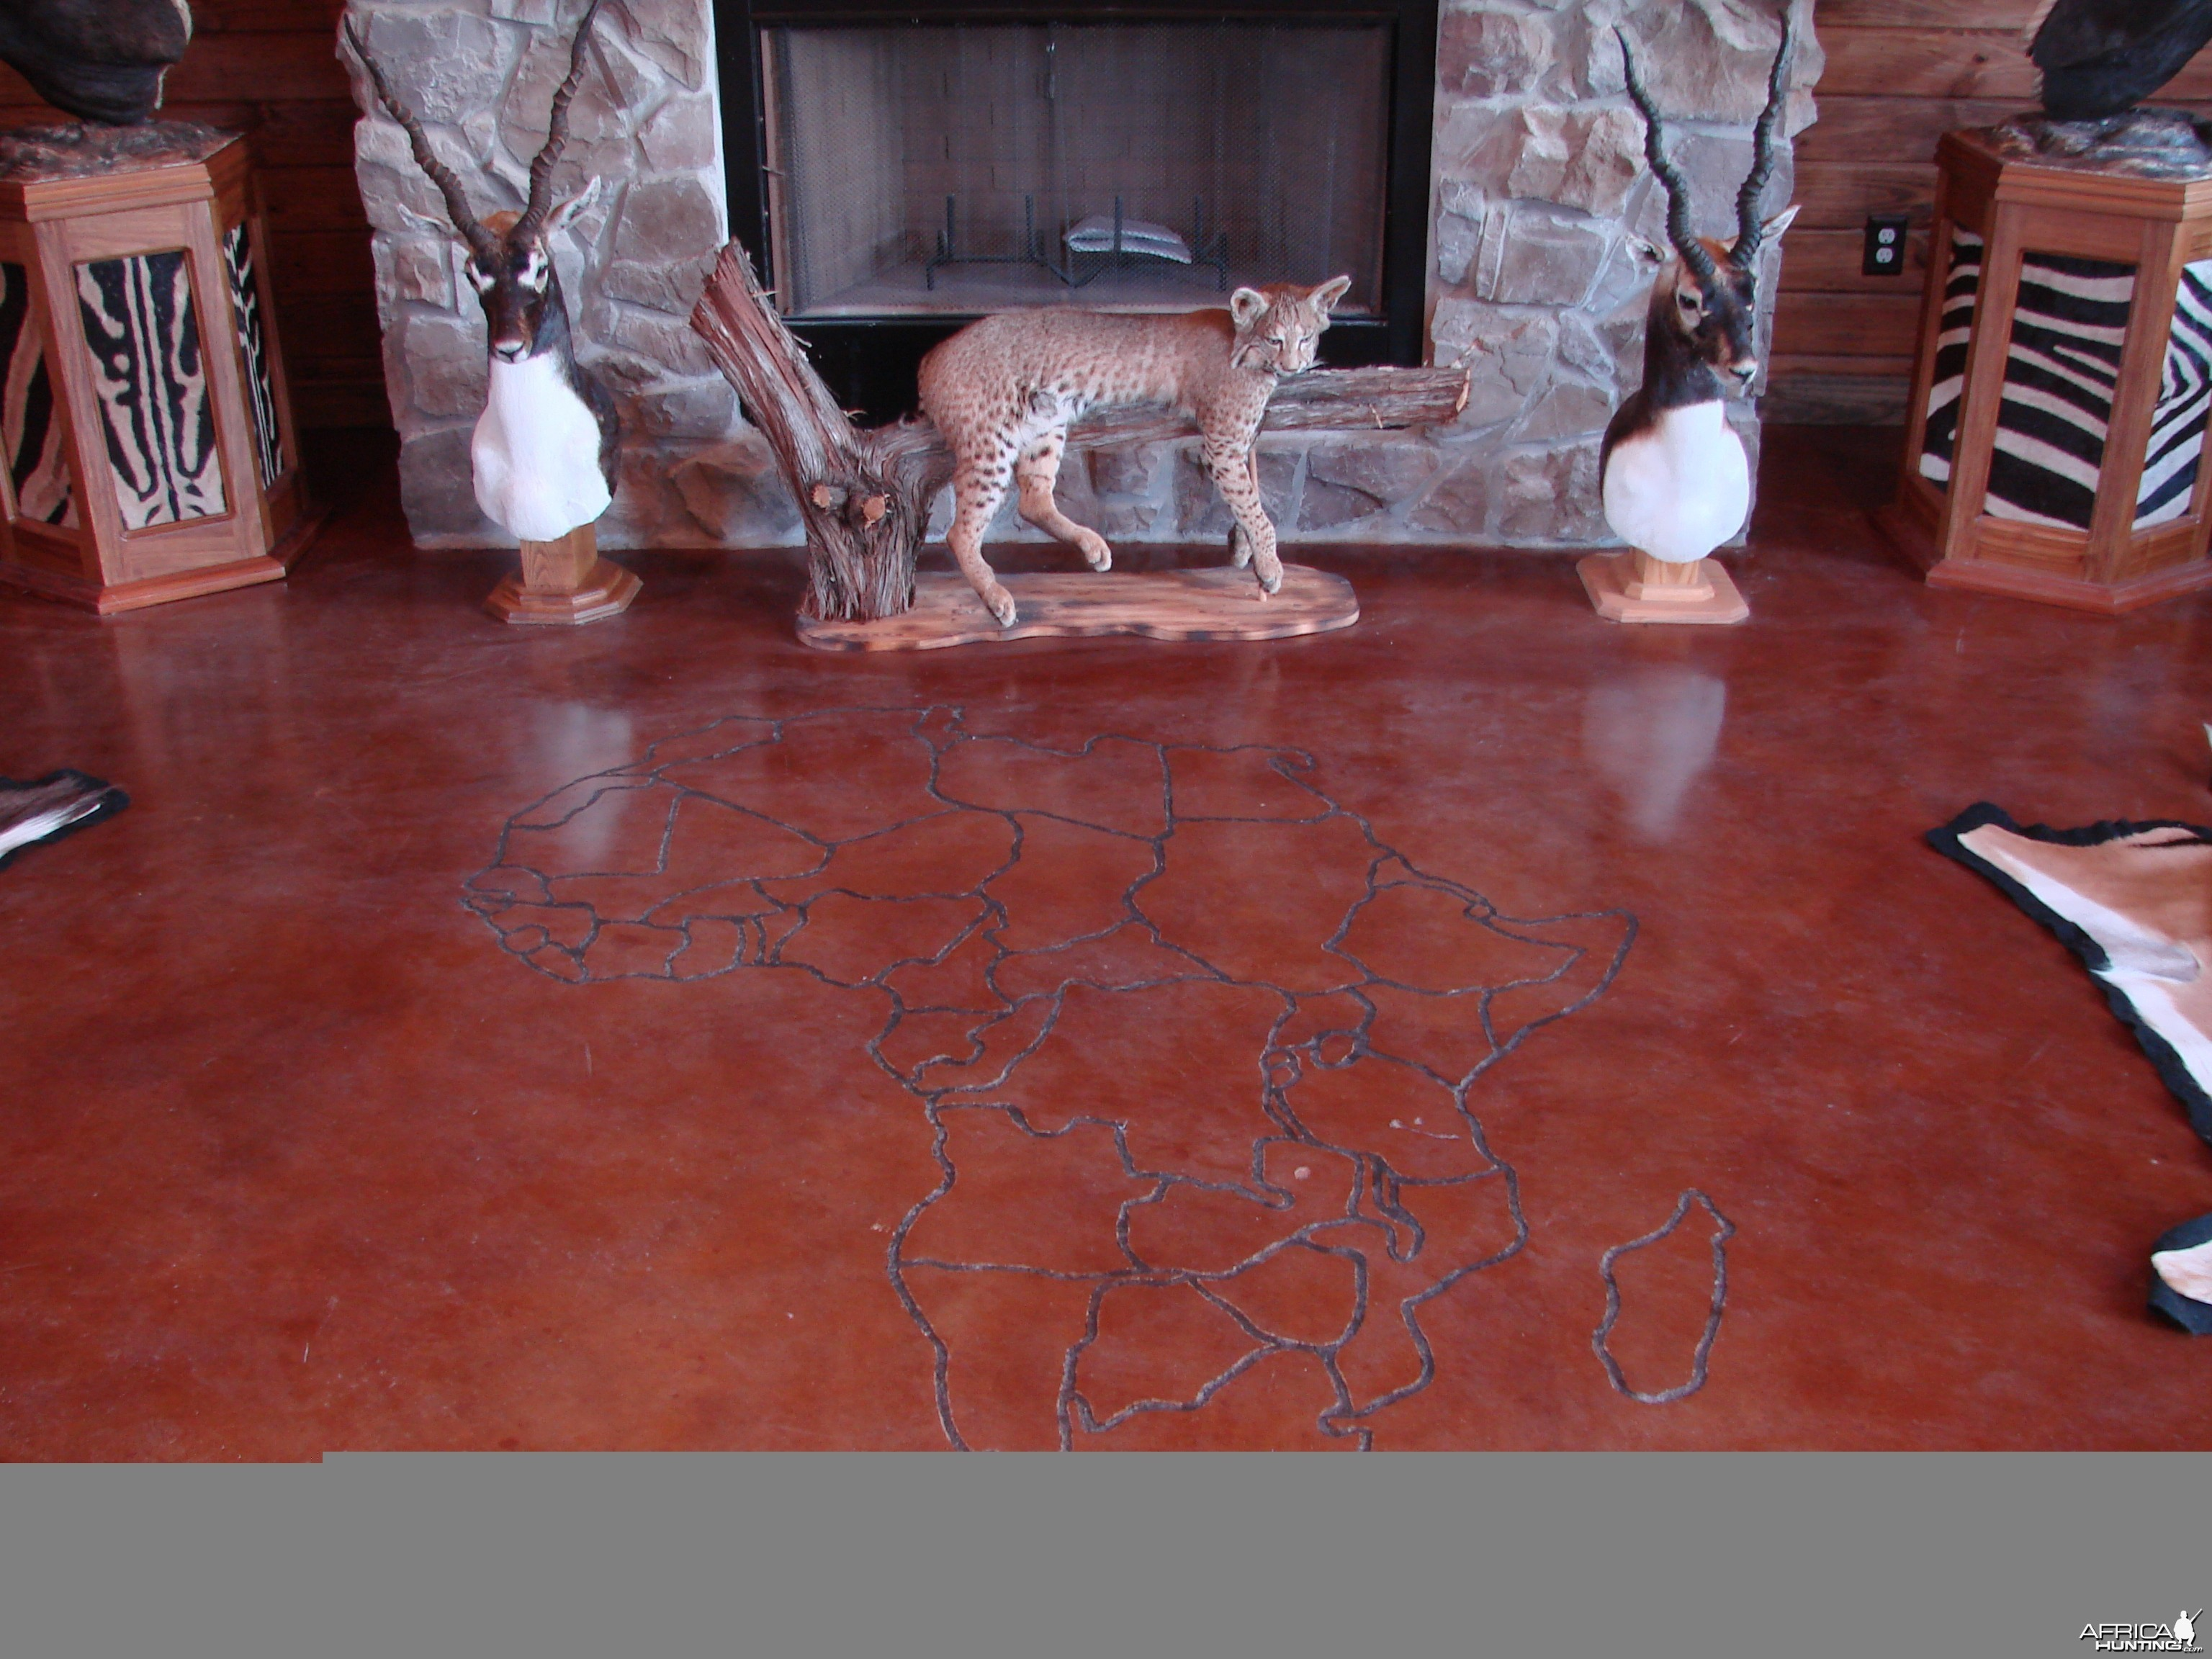 Trophy Room - Africa etched in floor